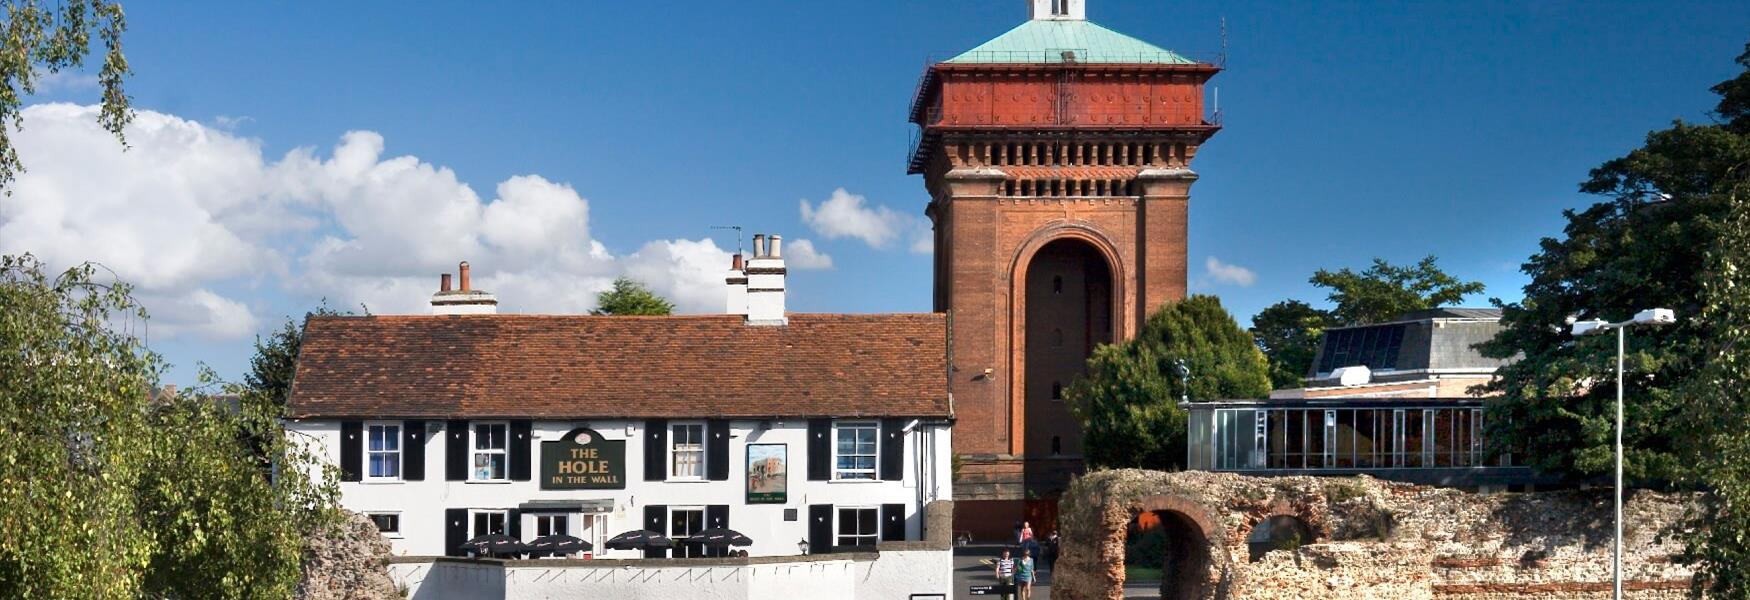 Jumbo and The Balkerne Gate in Colchester Town Centre